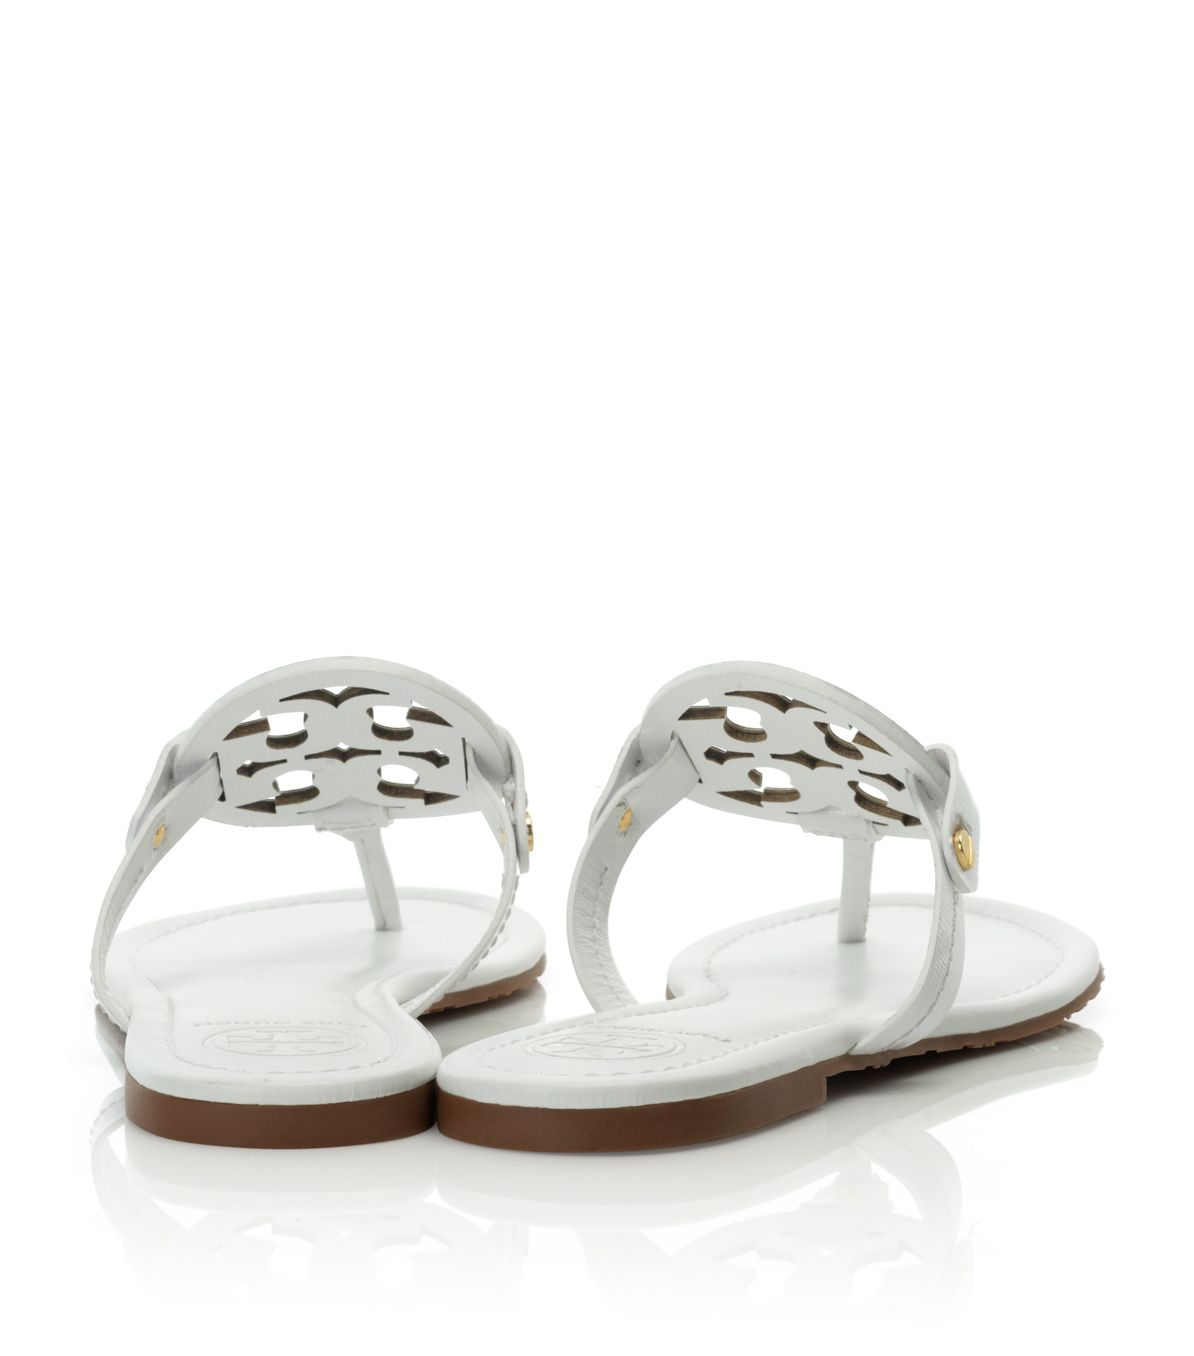 d0532733d Tory Burch Patent Leather Miller Sandal in White - Lyst